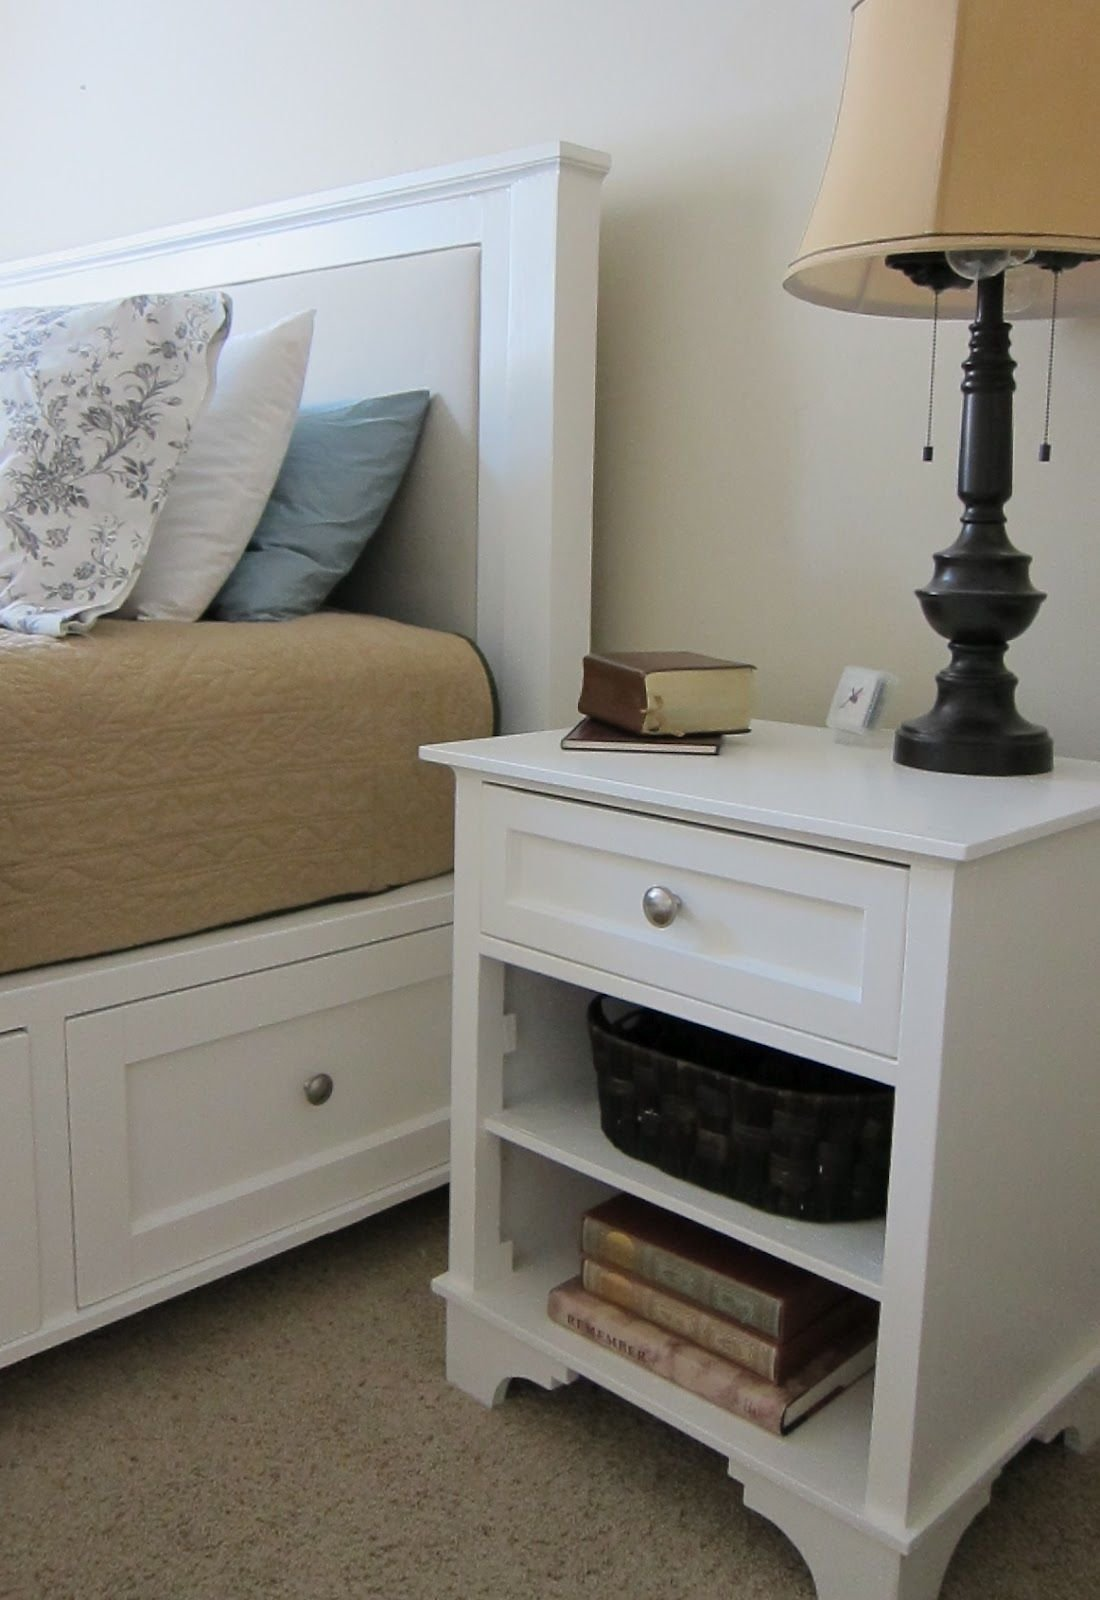 Best Instructions On How To Build This Bed And Night Stand From With Pictures